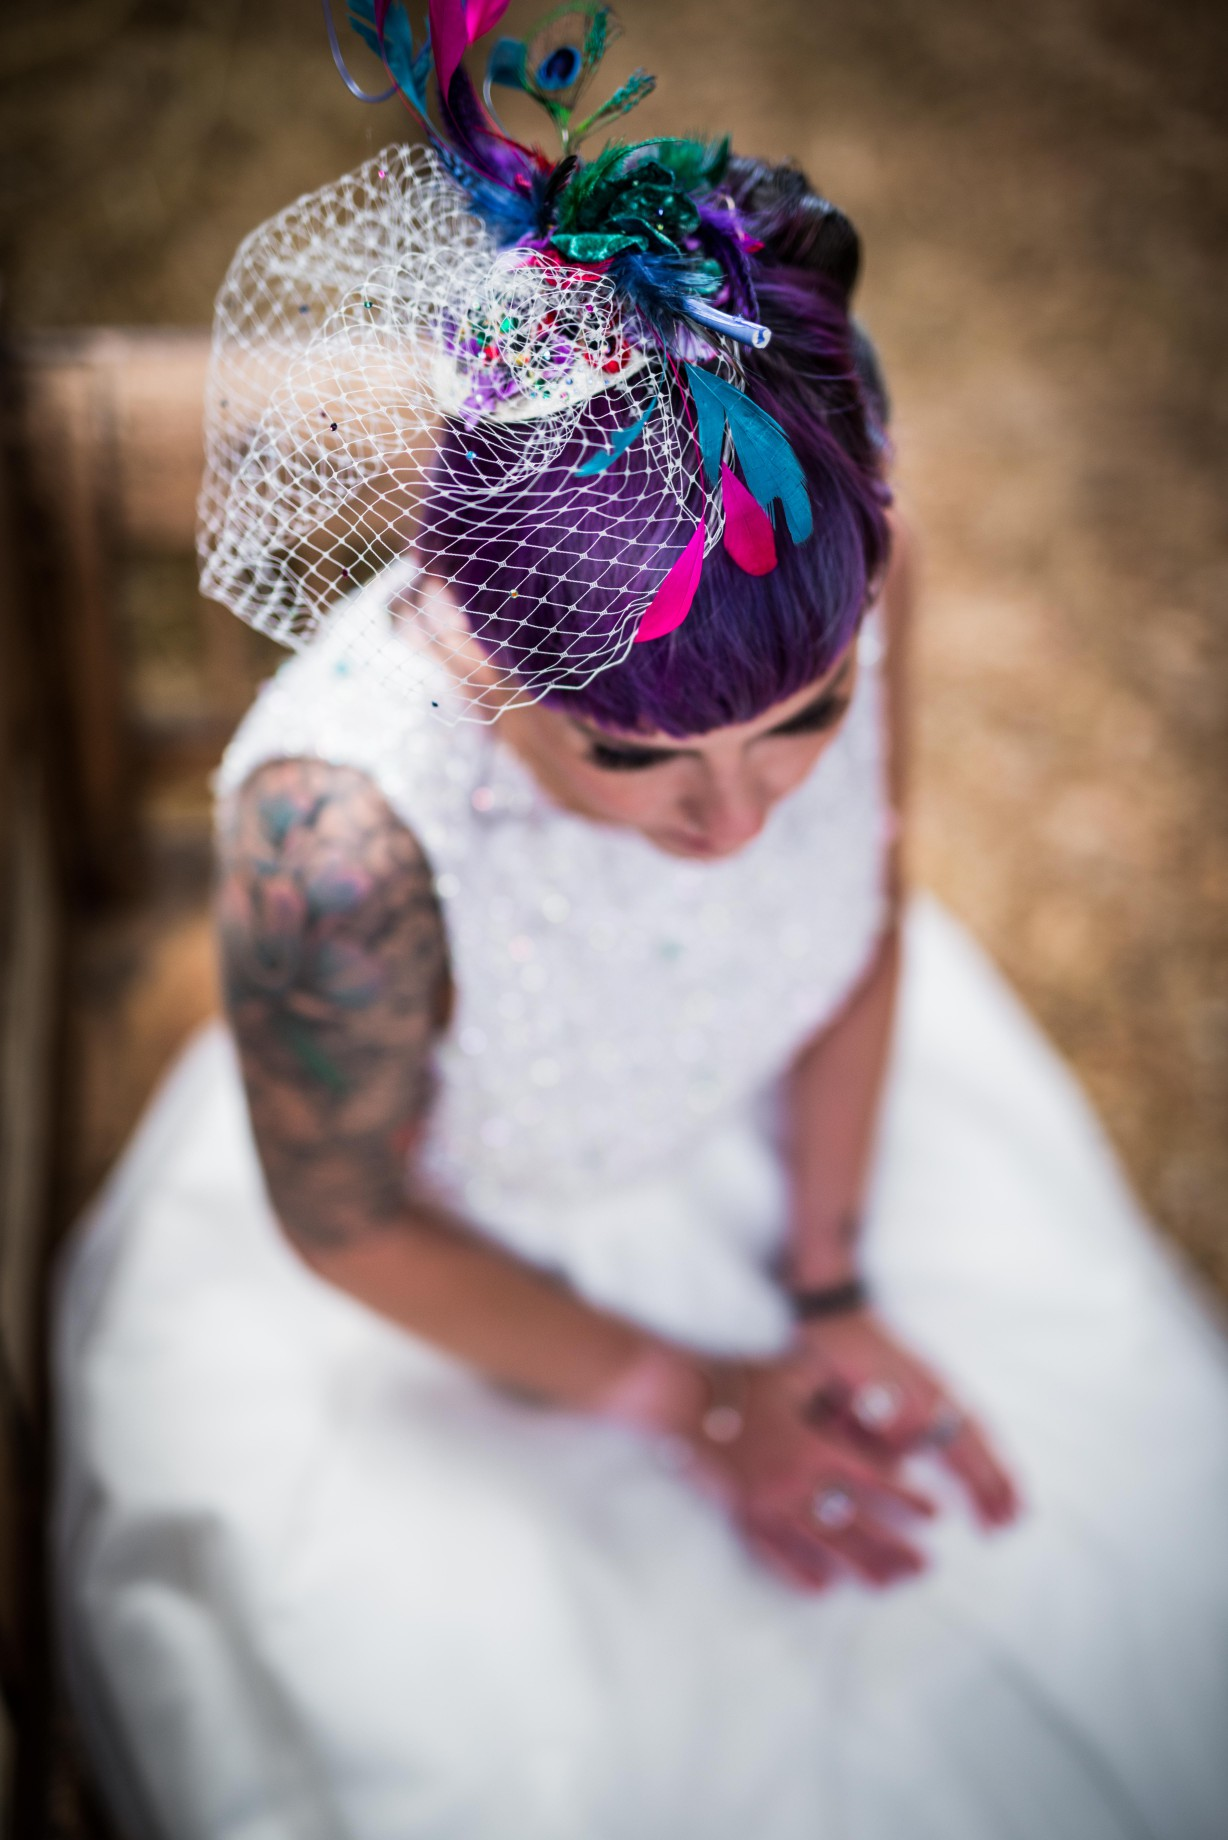 Peacock barns - alternative unconventional wedding photoshoot - rustic decadent - bride tattoo - bridal hair